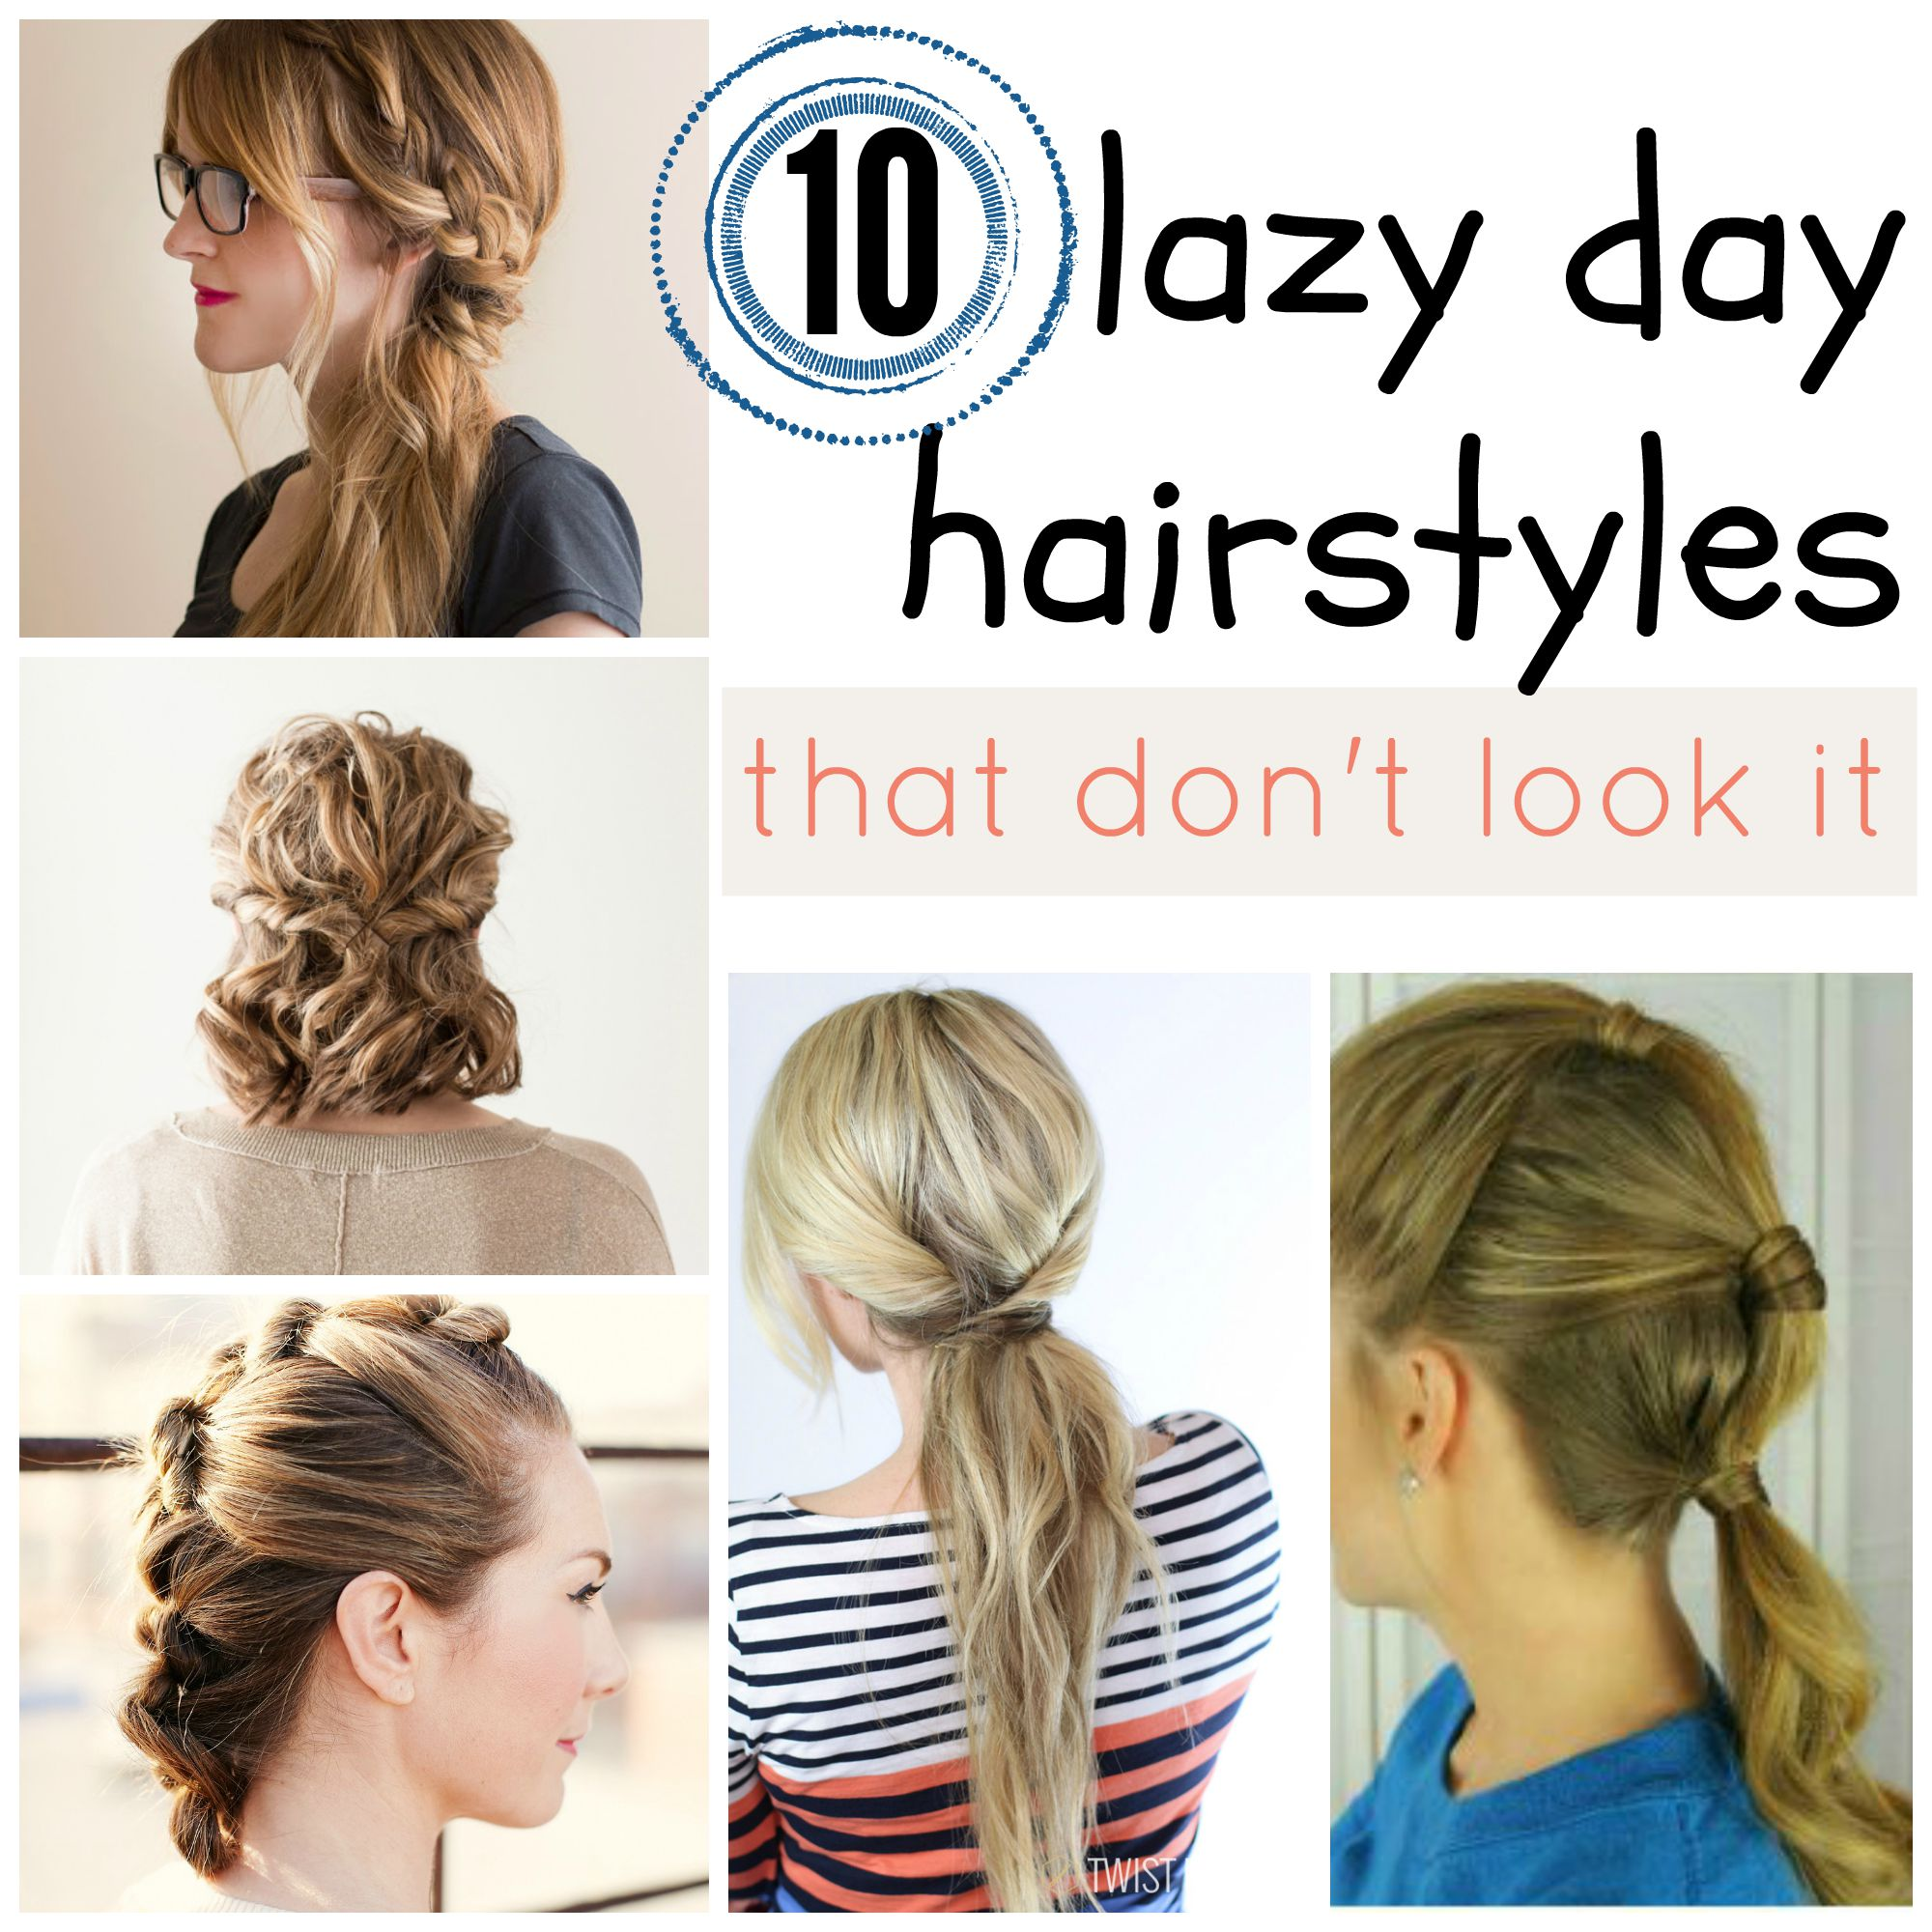 remodelaholic | 10 lazy day hairstyles that don't look it